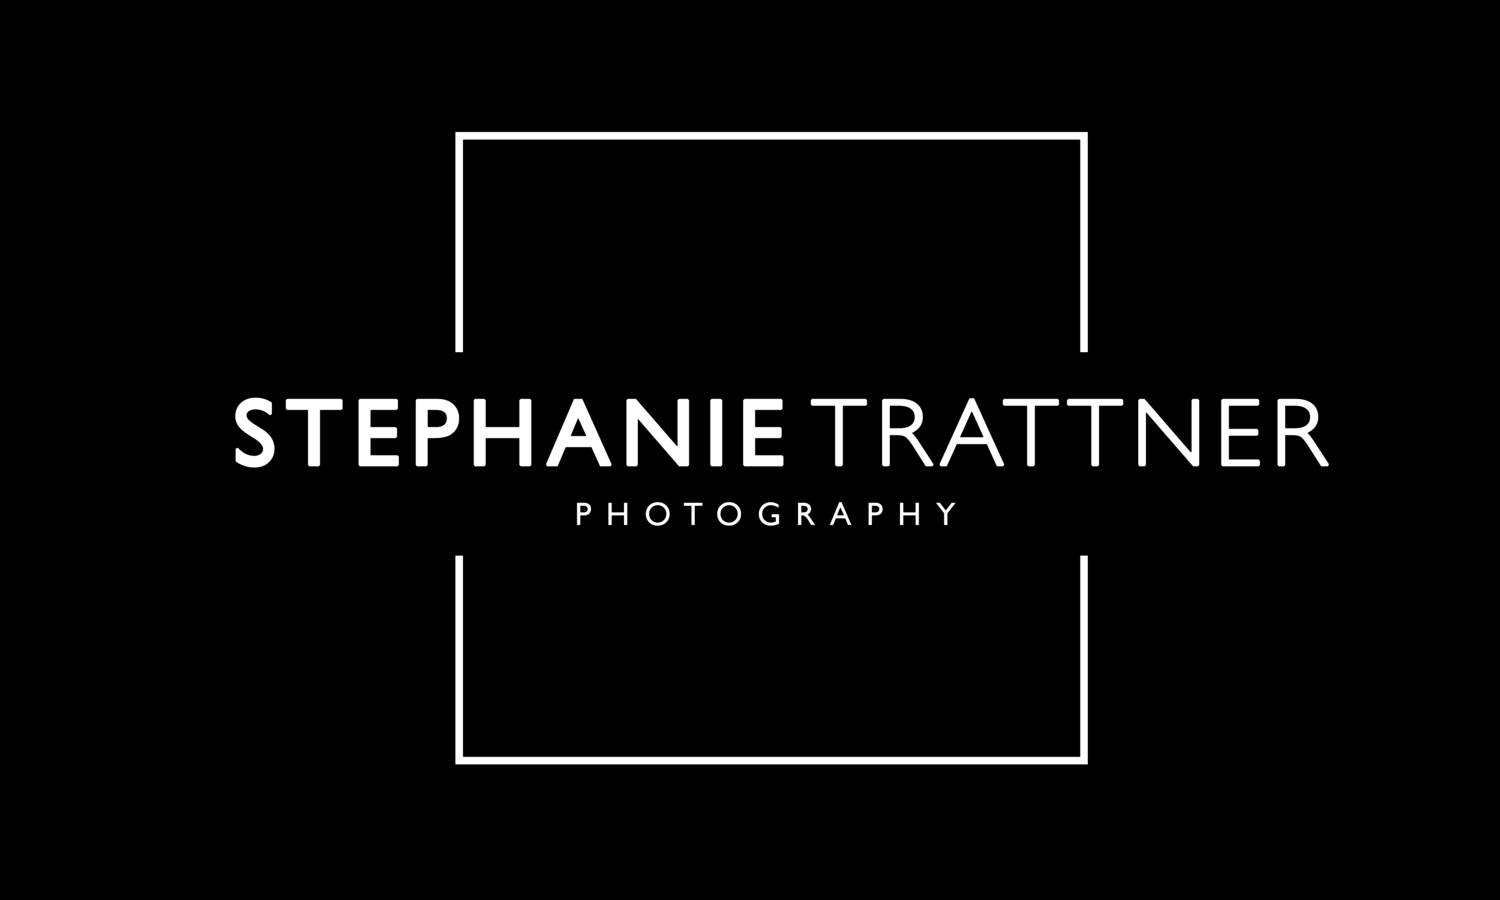 Stephanie Trattner Photography